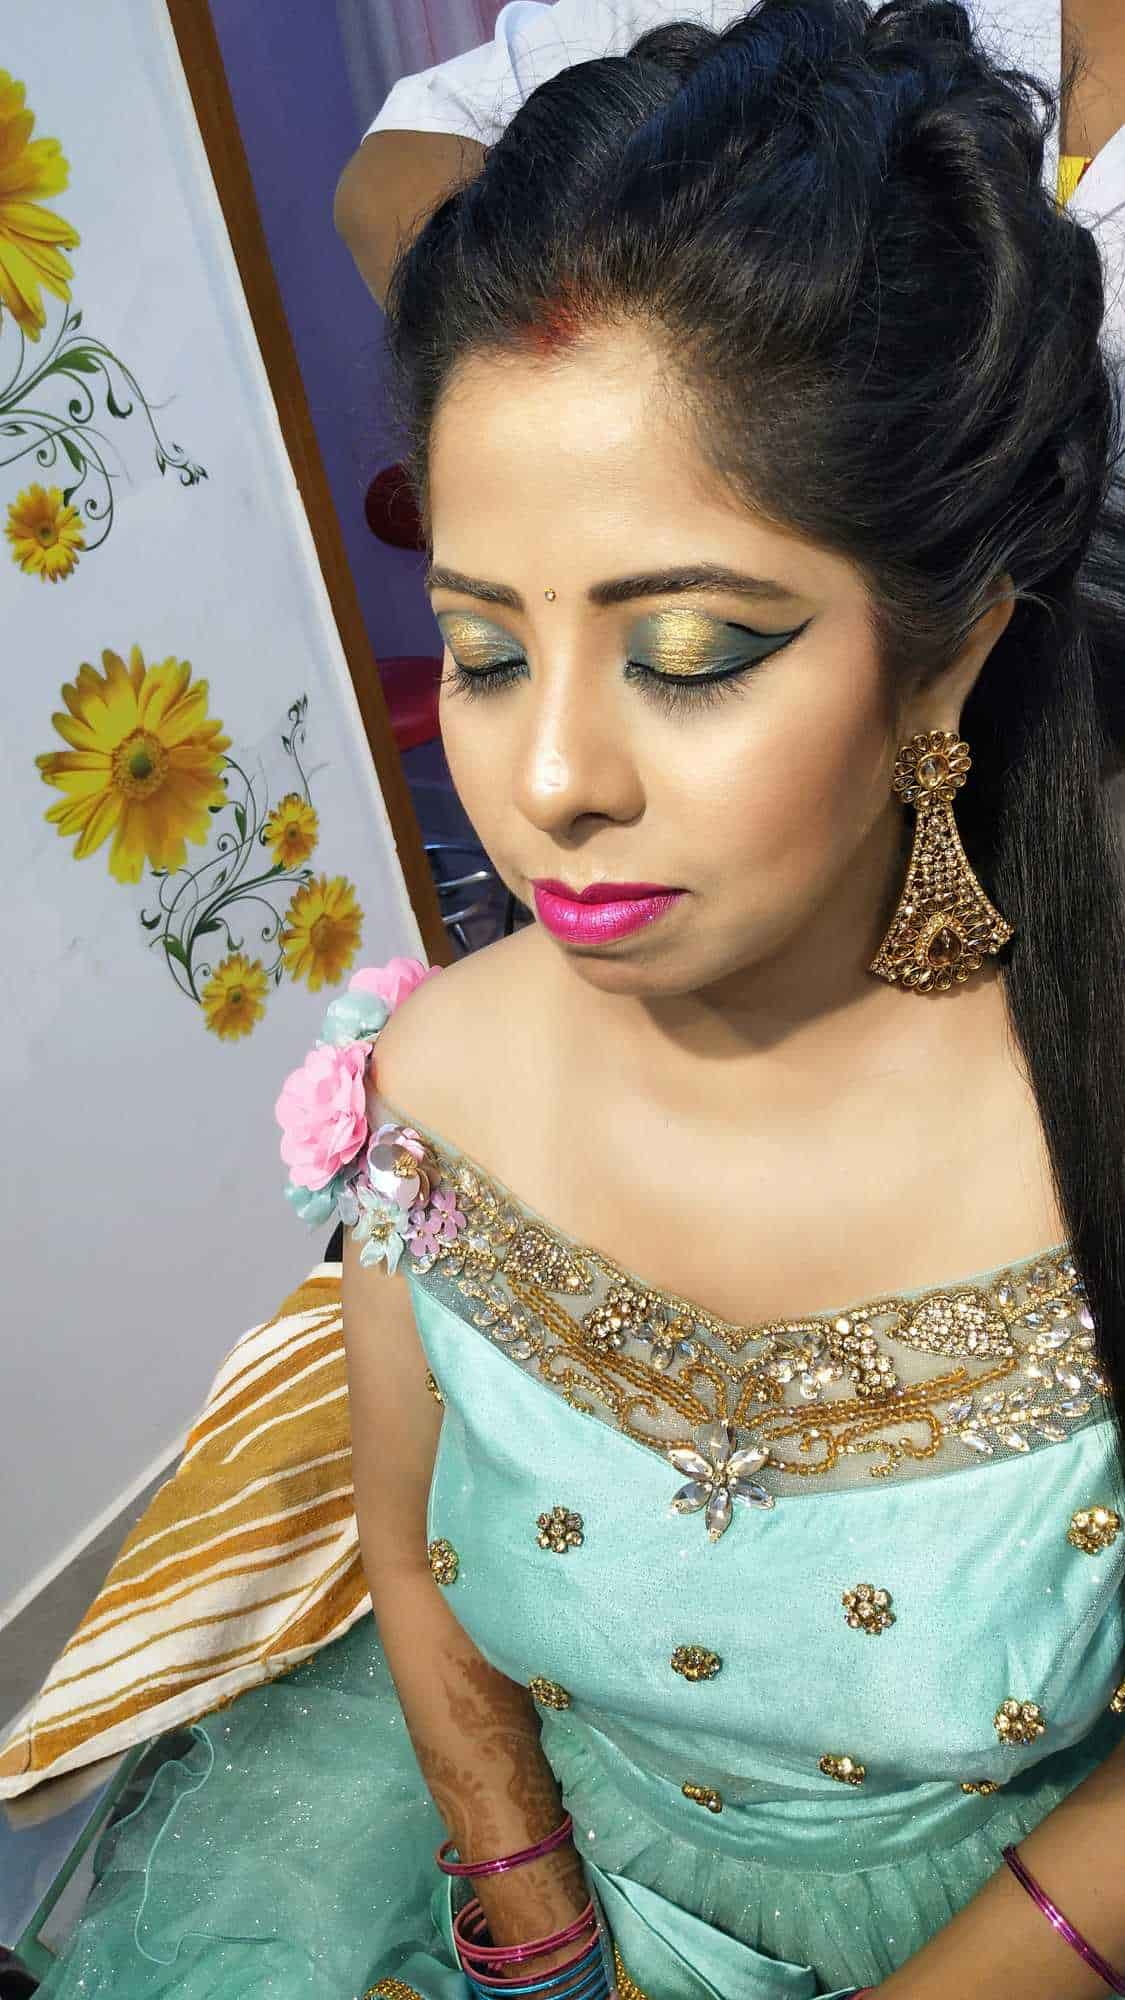 Makeup Work - Maskara Makeovers Trained By VLCC Photos, Ganesh Nagar 2, Delhi ...